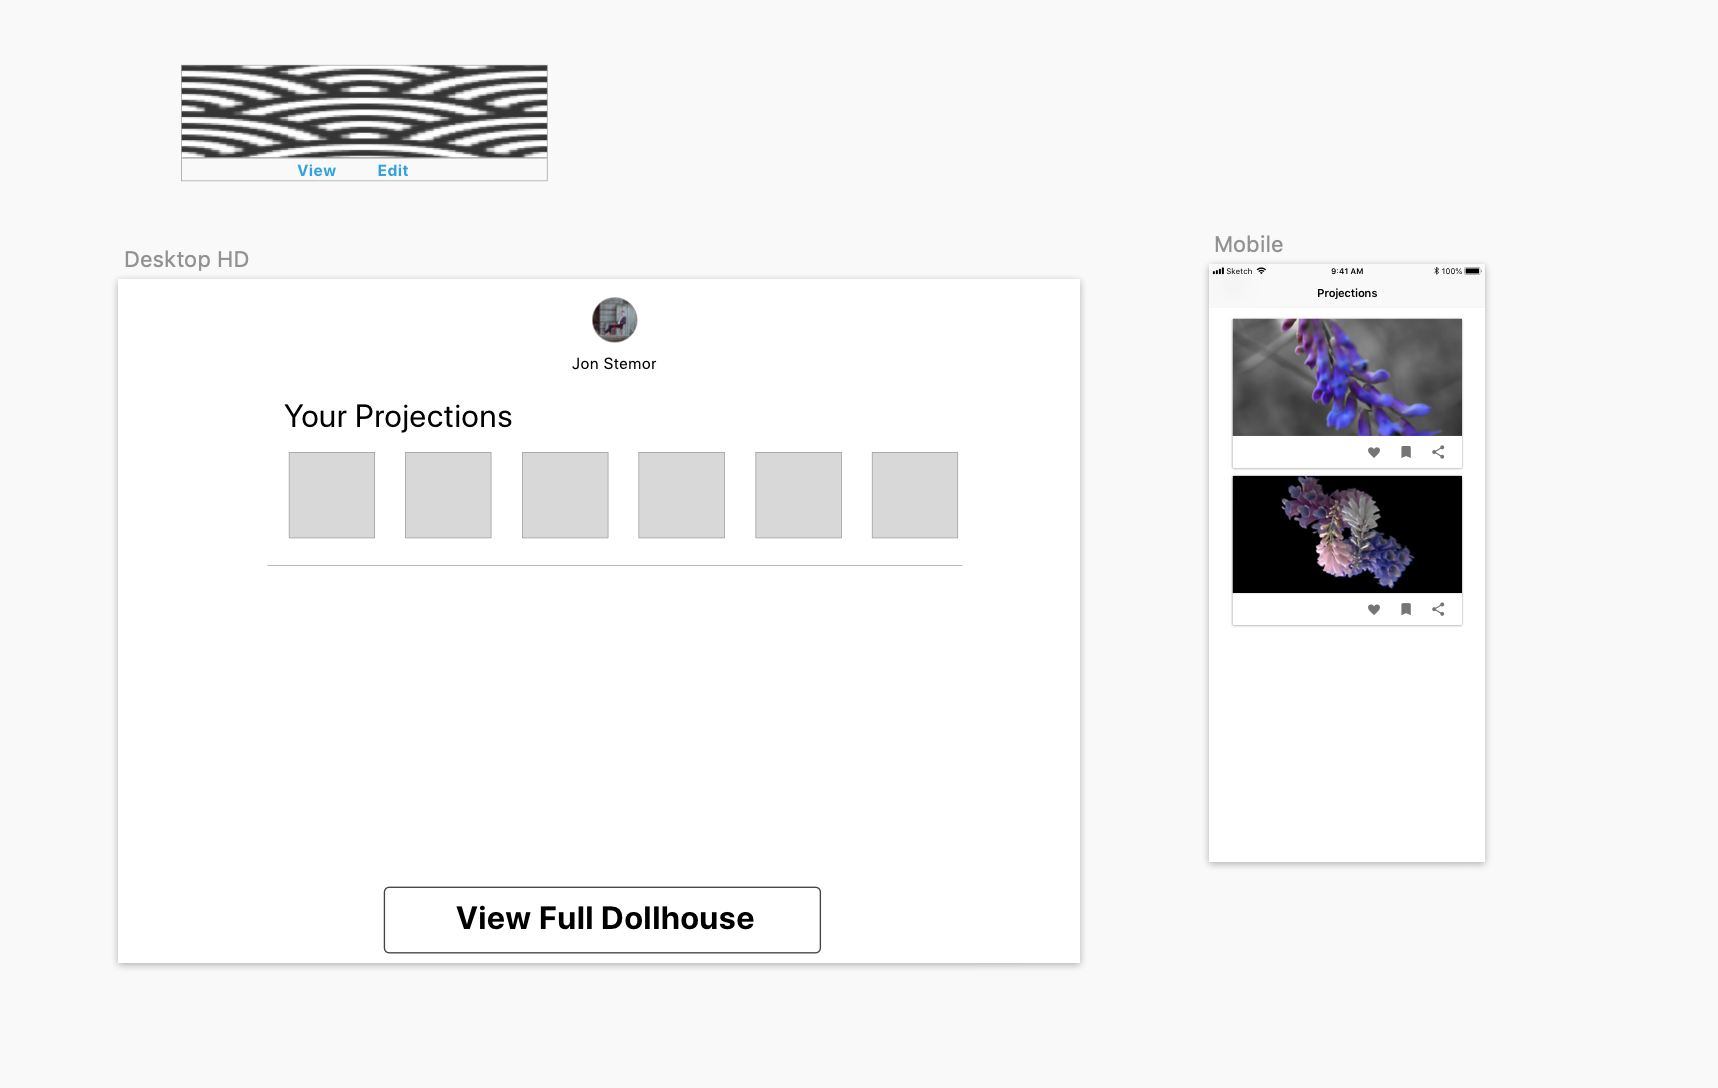 Going to develop a mobile interface to create artwork and view projections